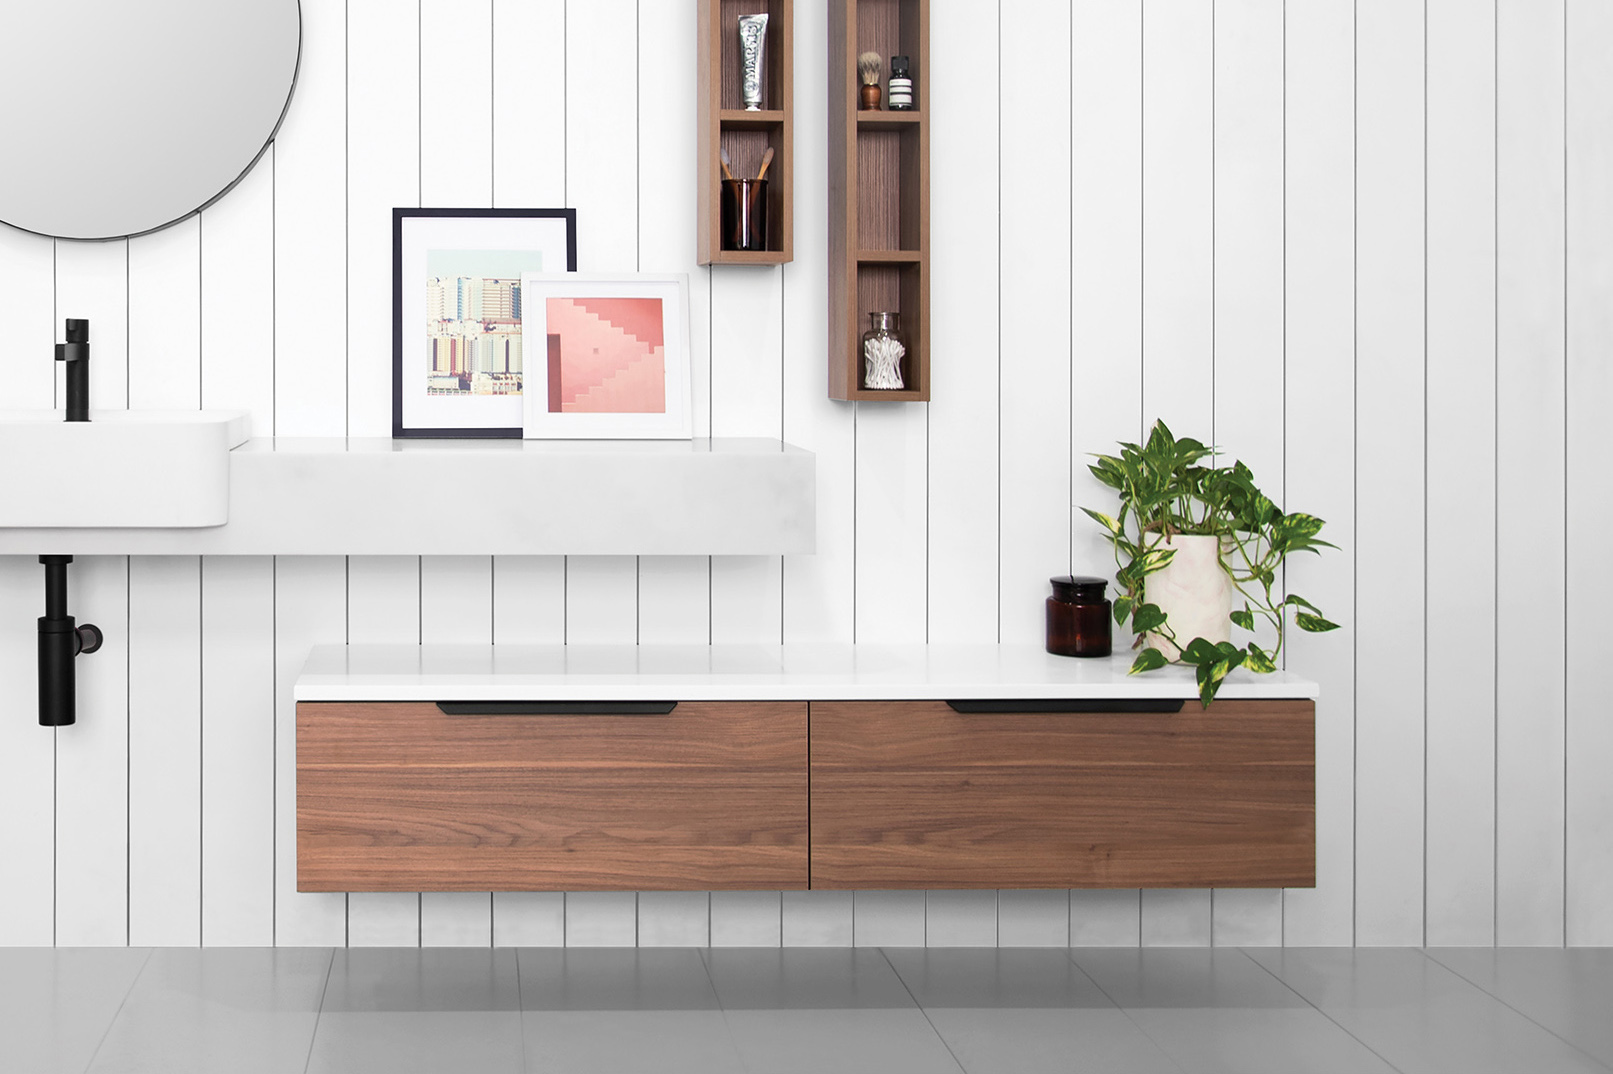 European-inspired bathroom storage - Completehome